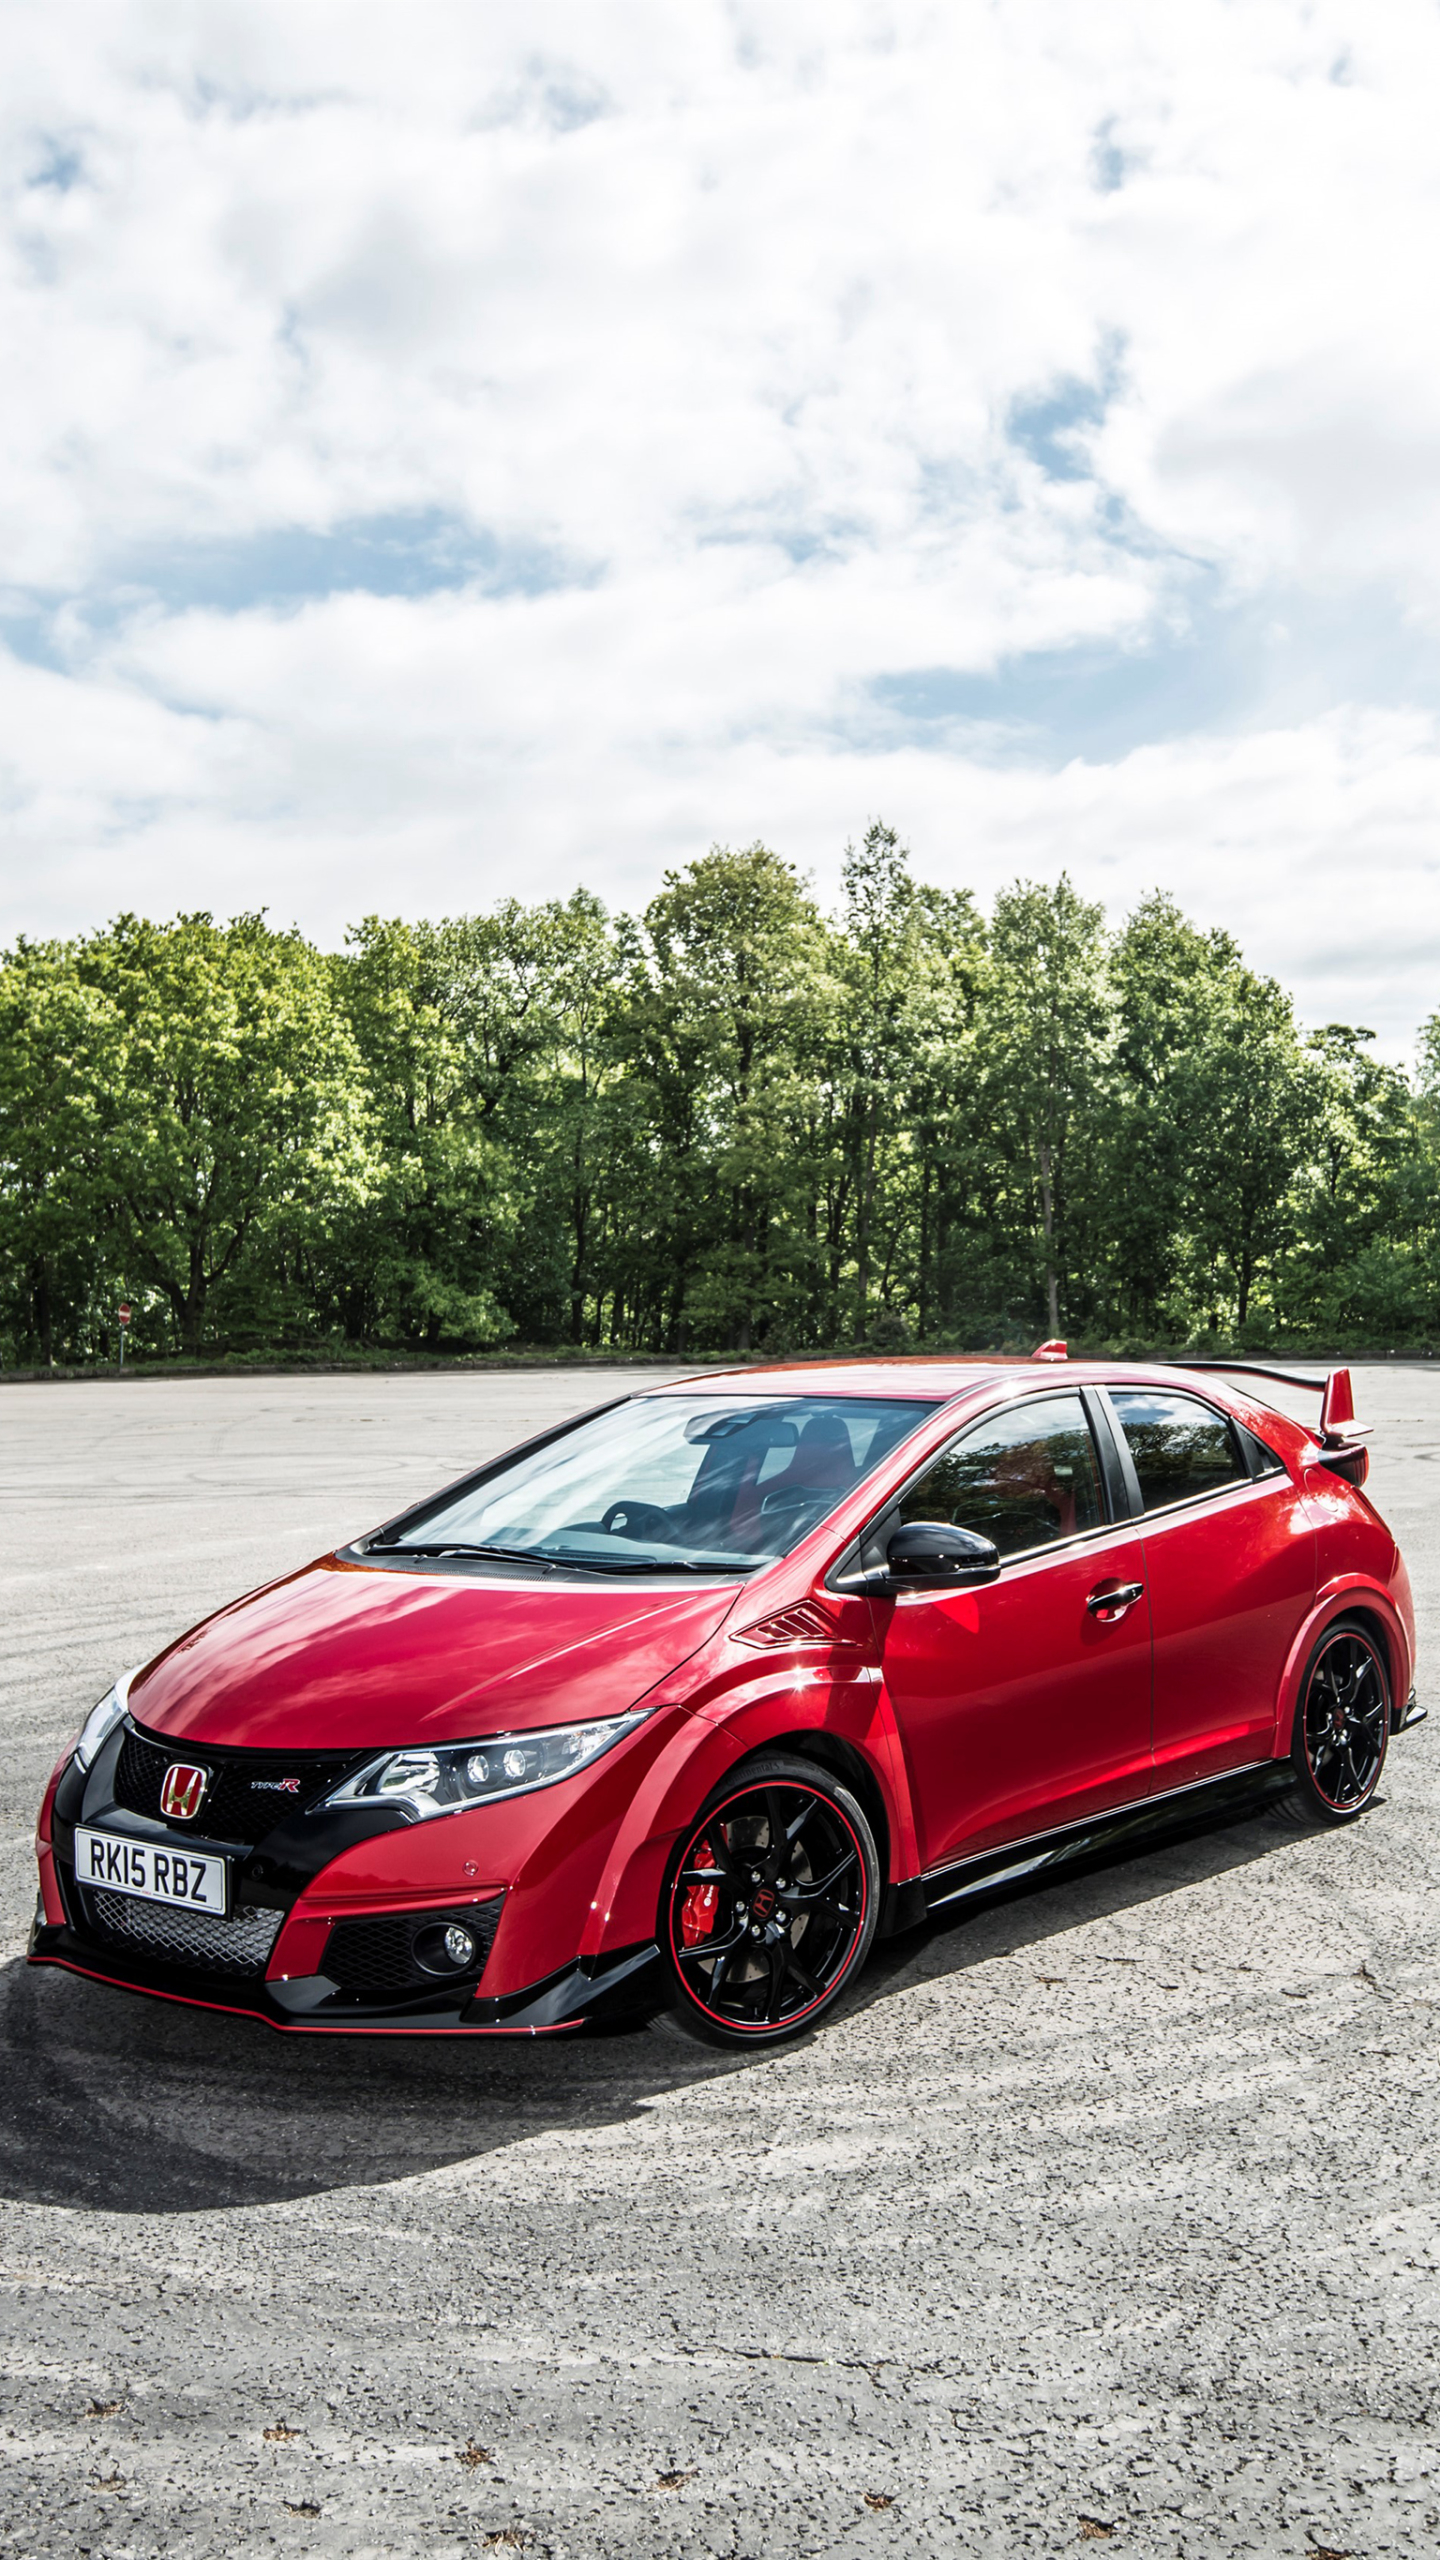 Vehicles Honda Civic Type R 1440x2560 Wallpaper Id 642159